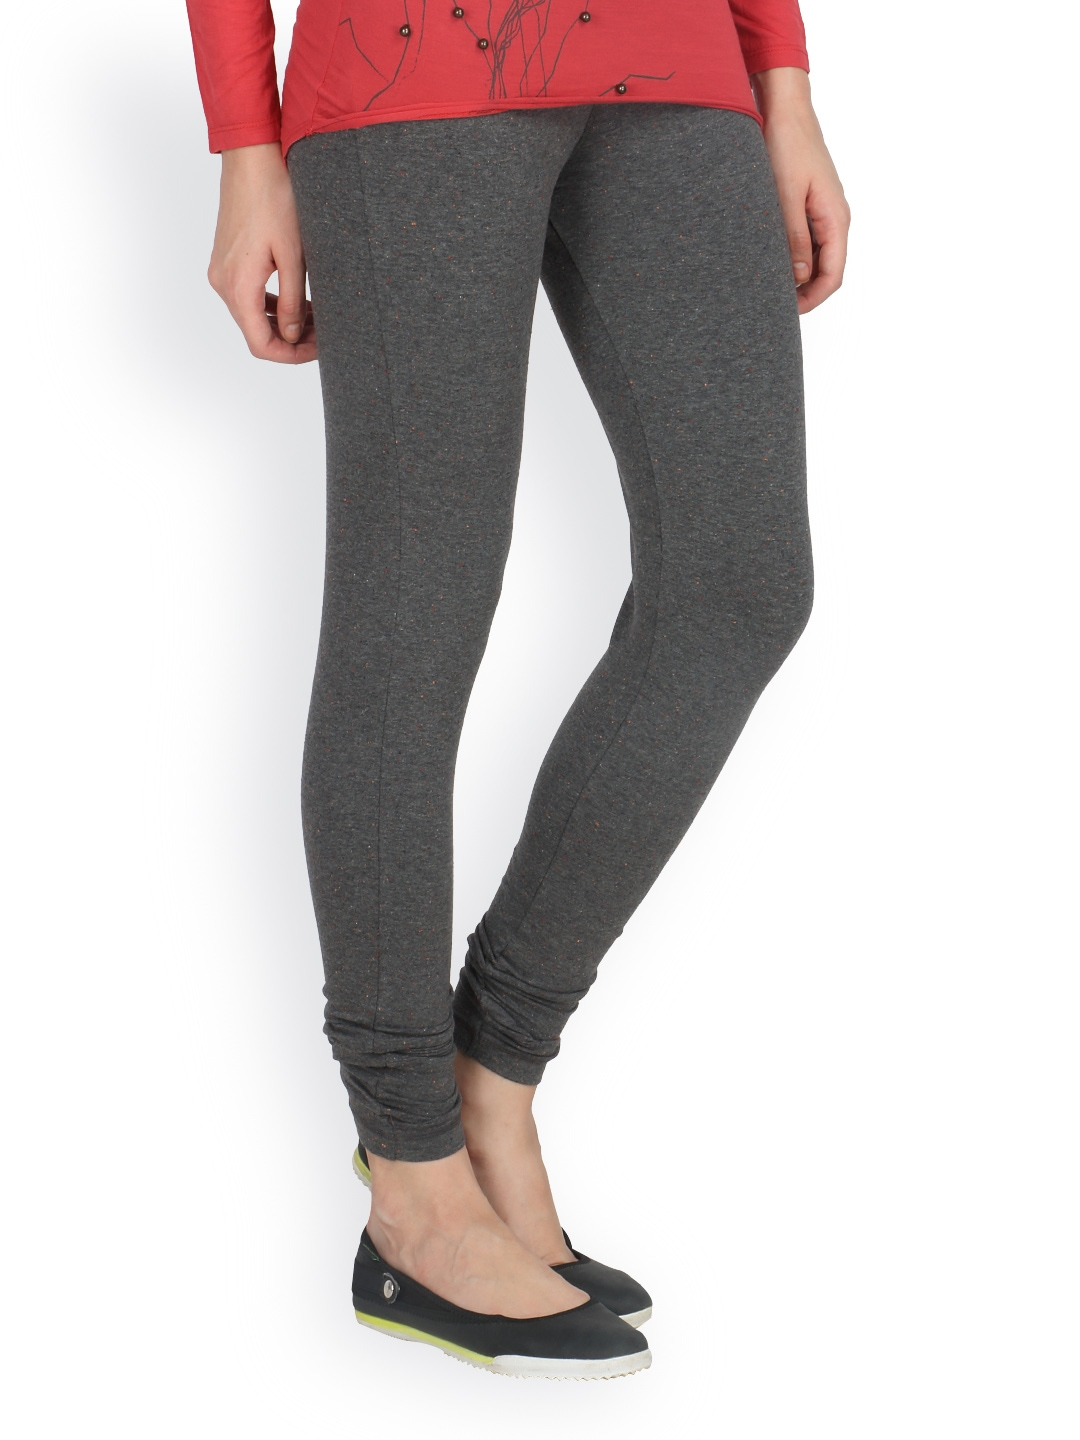 Women's Pants & Leggings. Shop women's pants and leggings at Zumiez, carrying the hottest styles from top apparel brands, like Obey, See You Monday, and Empyre. Free shipping to any Zumiez store.